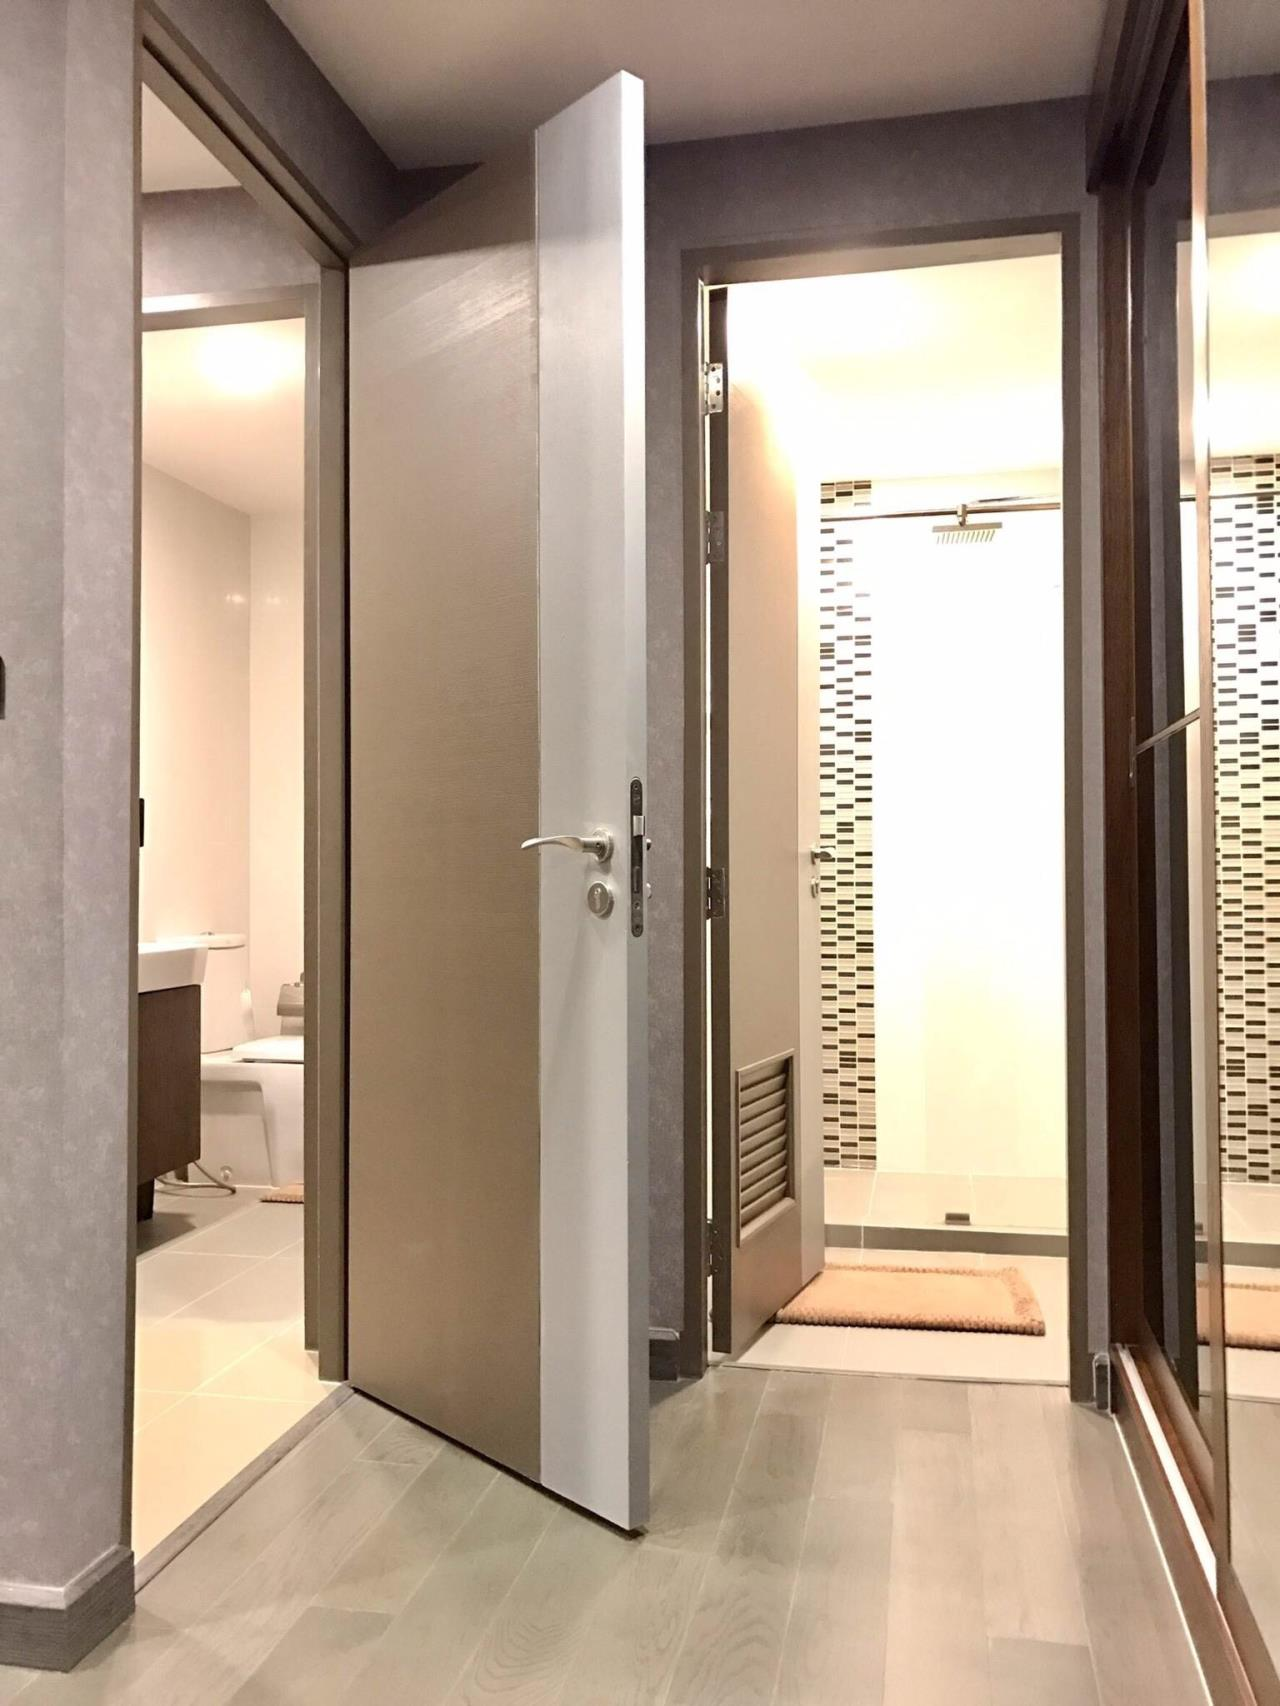 RE/MAX All Star Realty Agency's Mirage Sukhumvit one bed condo for sale/rent (BTS Asoke / MRT Sukhumvit) 15